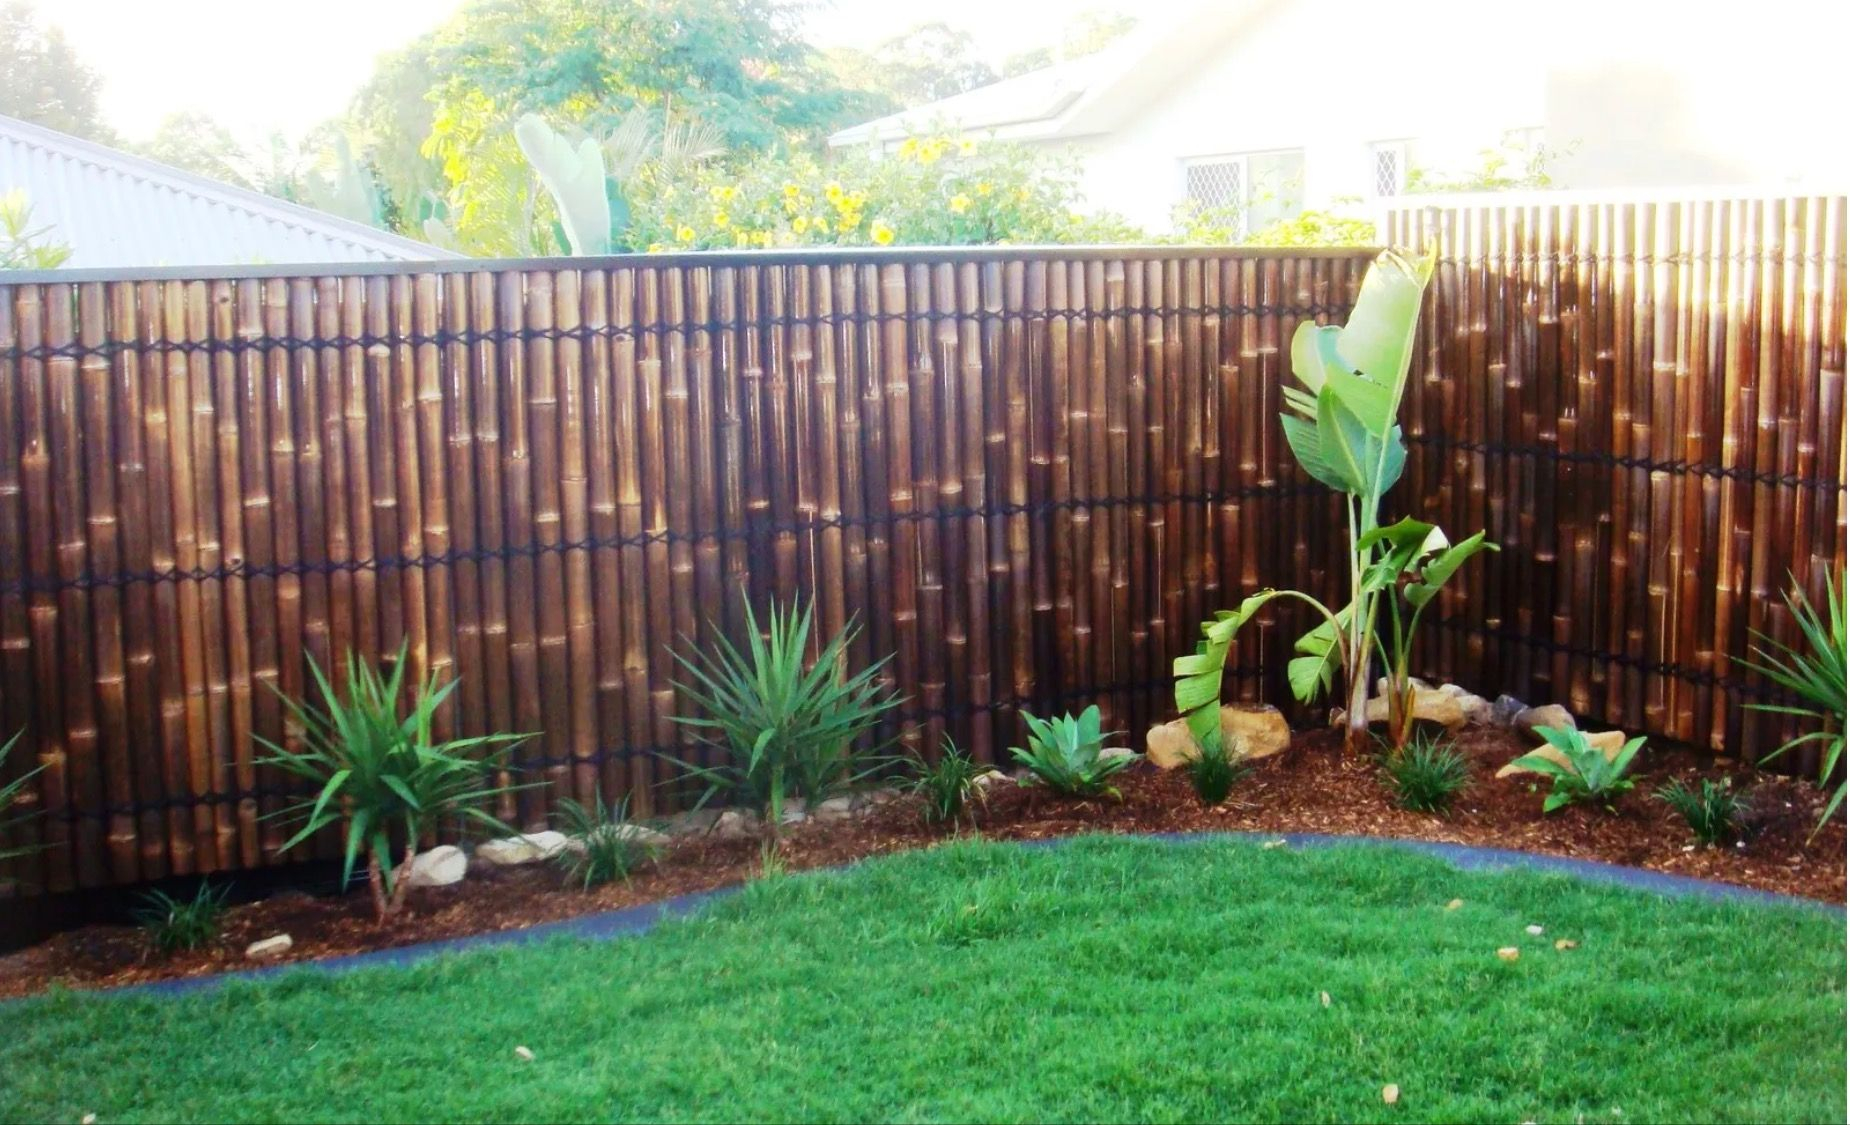 Bamboo Fence Outdoor In 2019 Bamboo Garden Fences Bamboo Fence inside 15 Smart Designs of How to Make Bamboo Ideas For Backyard